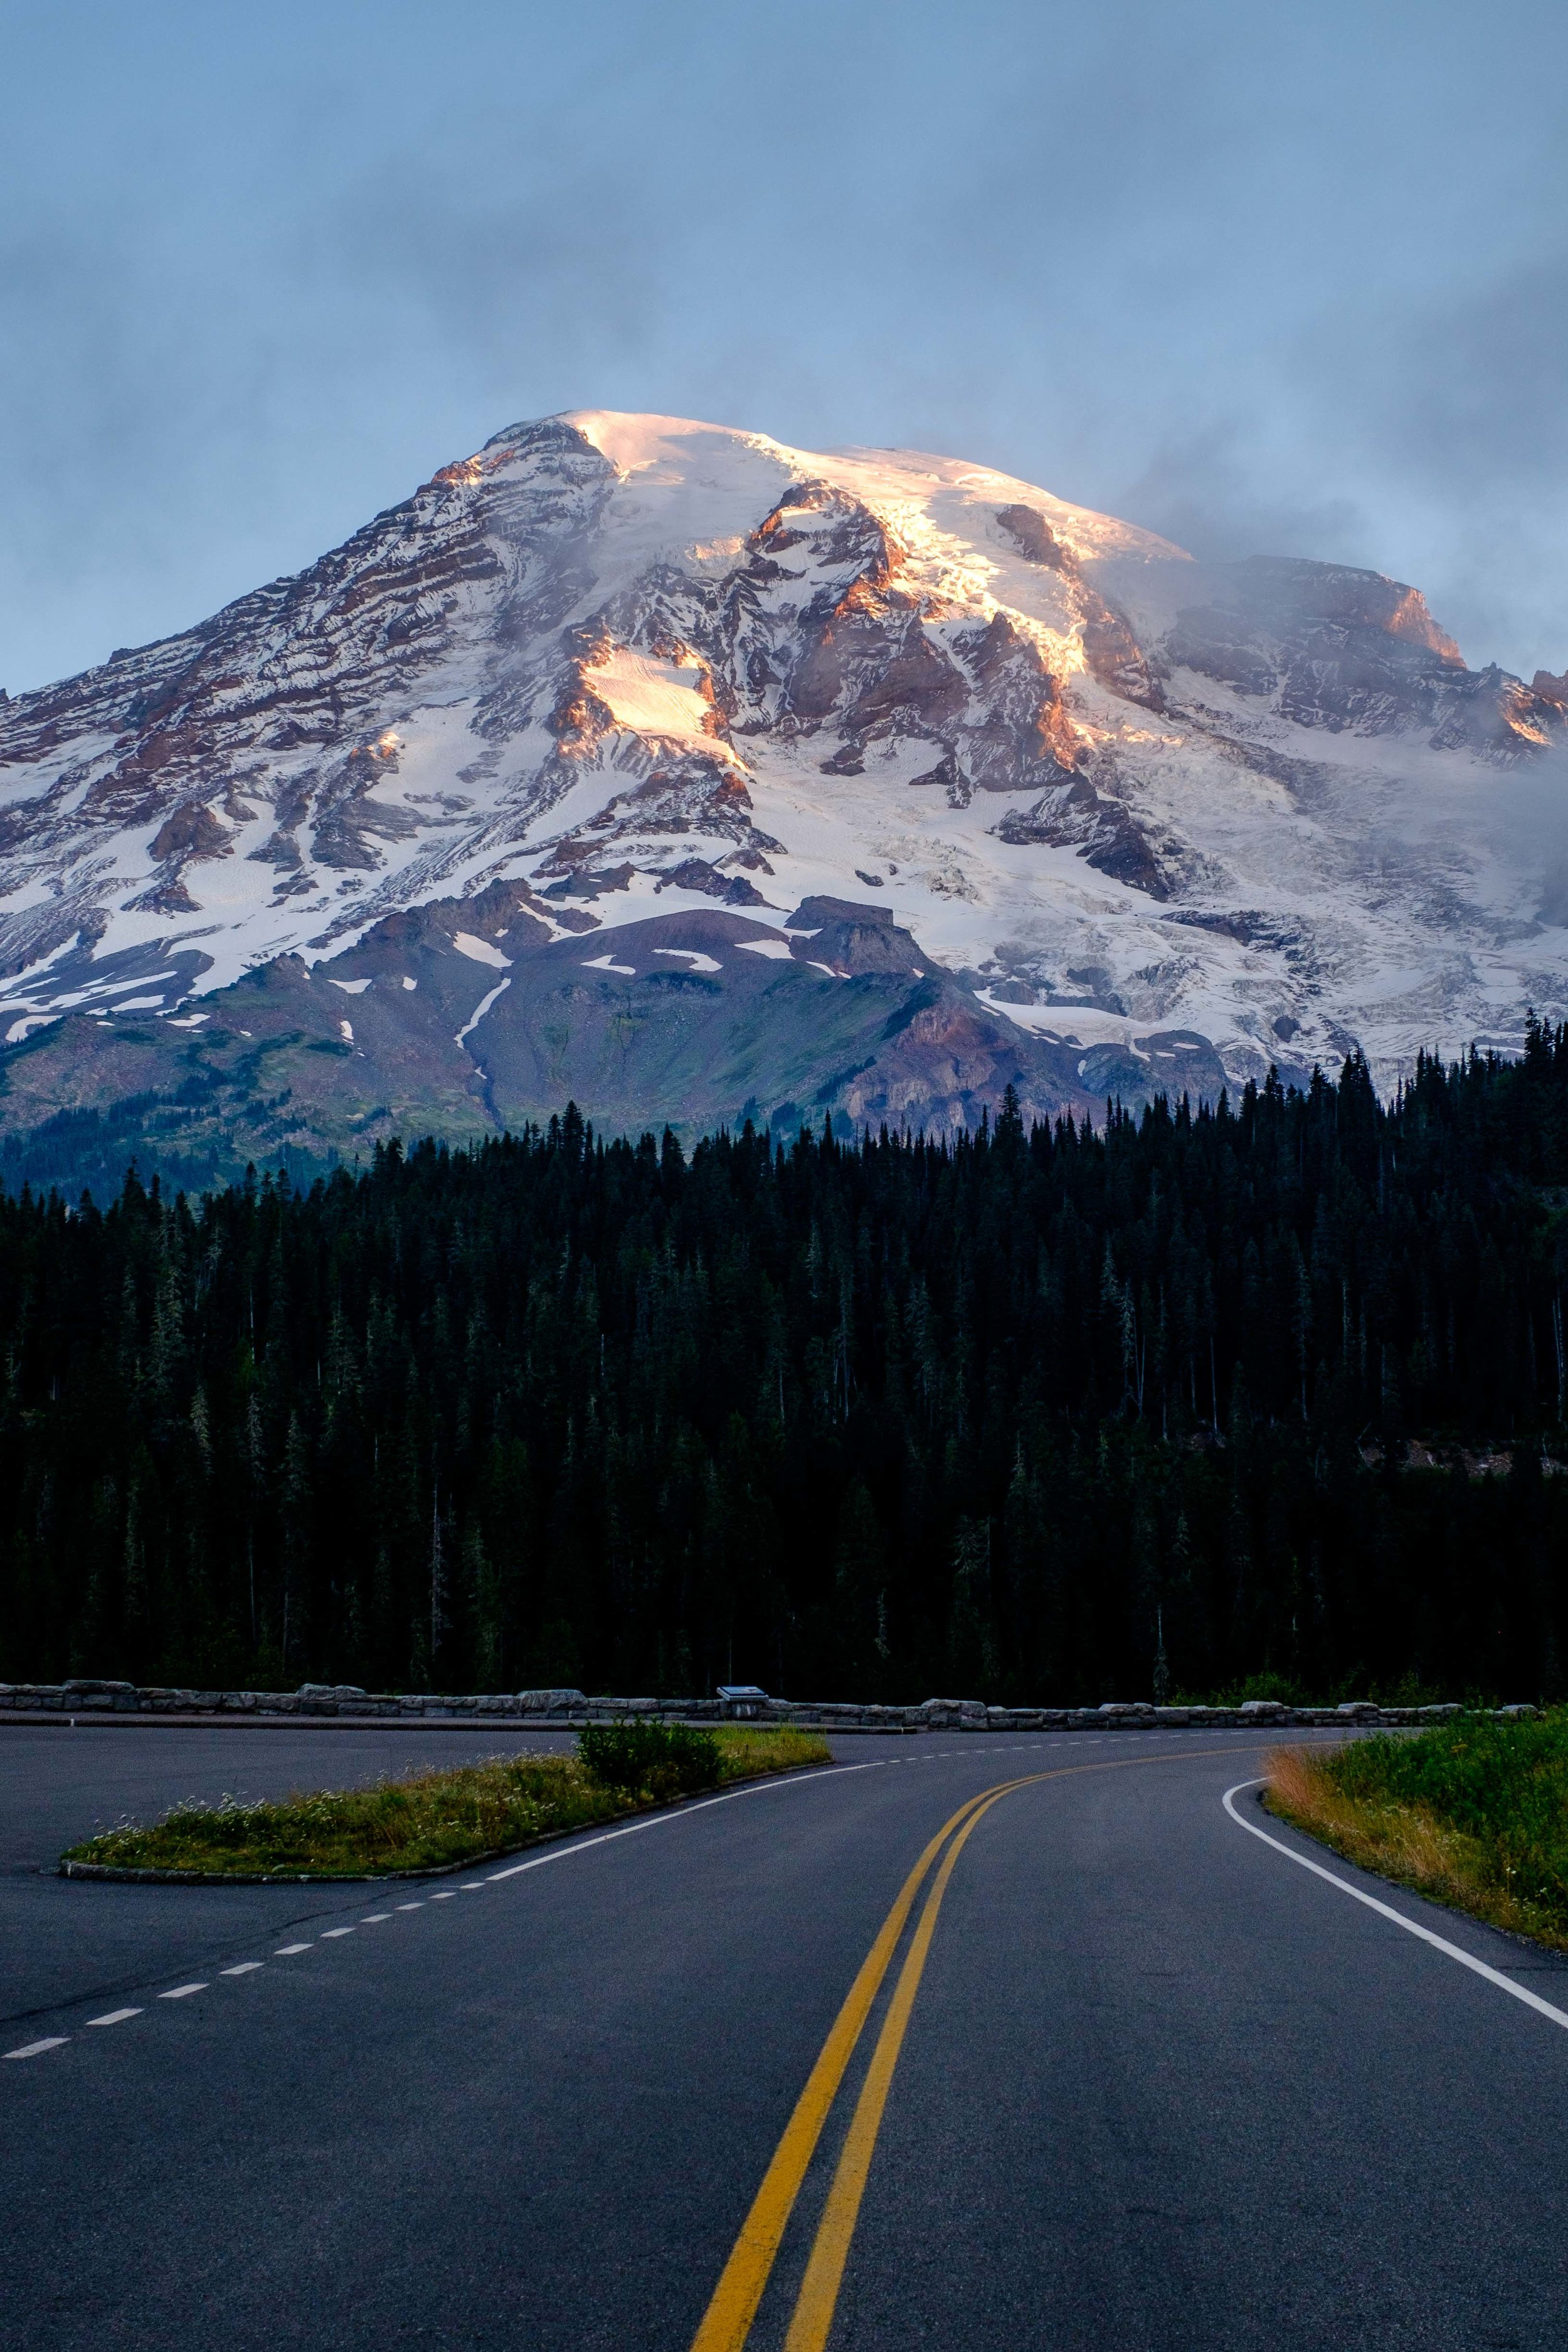 On the road in Mount Rainier National Park.